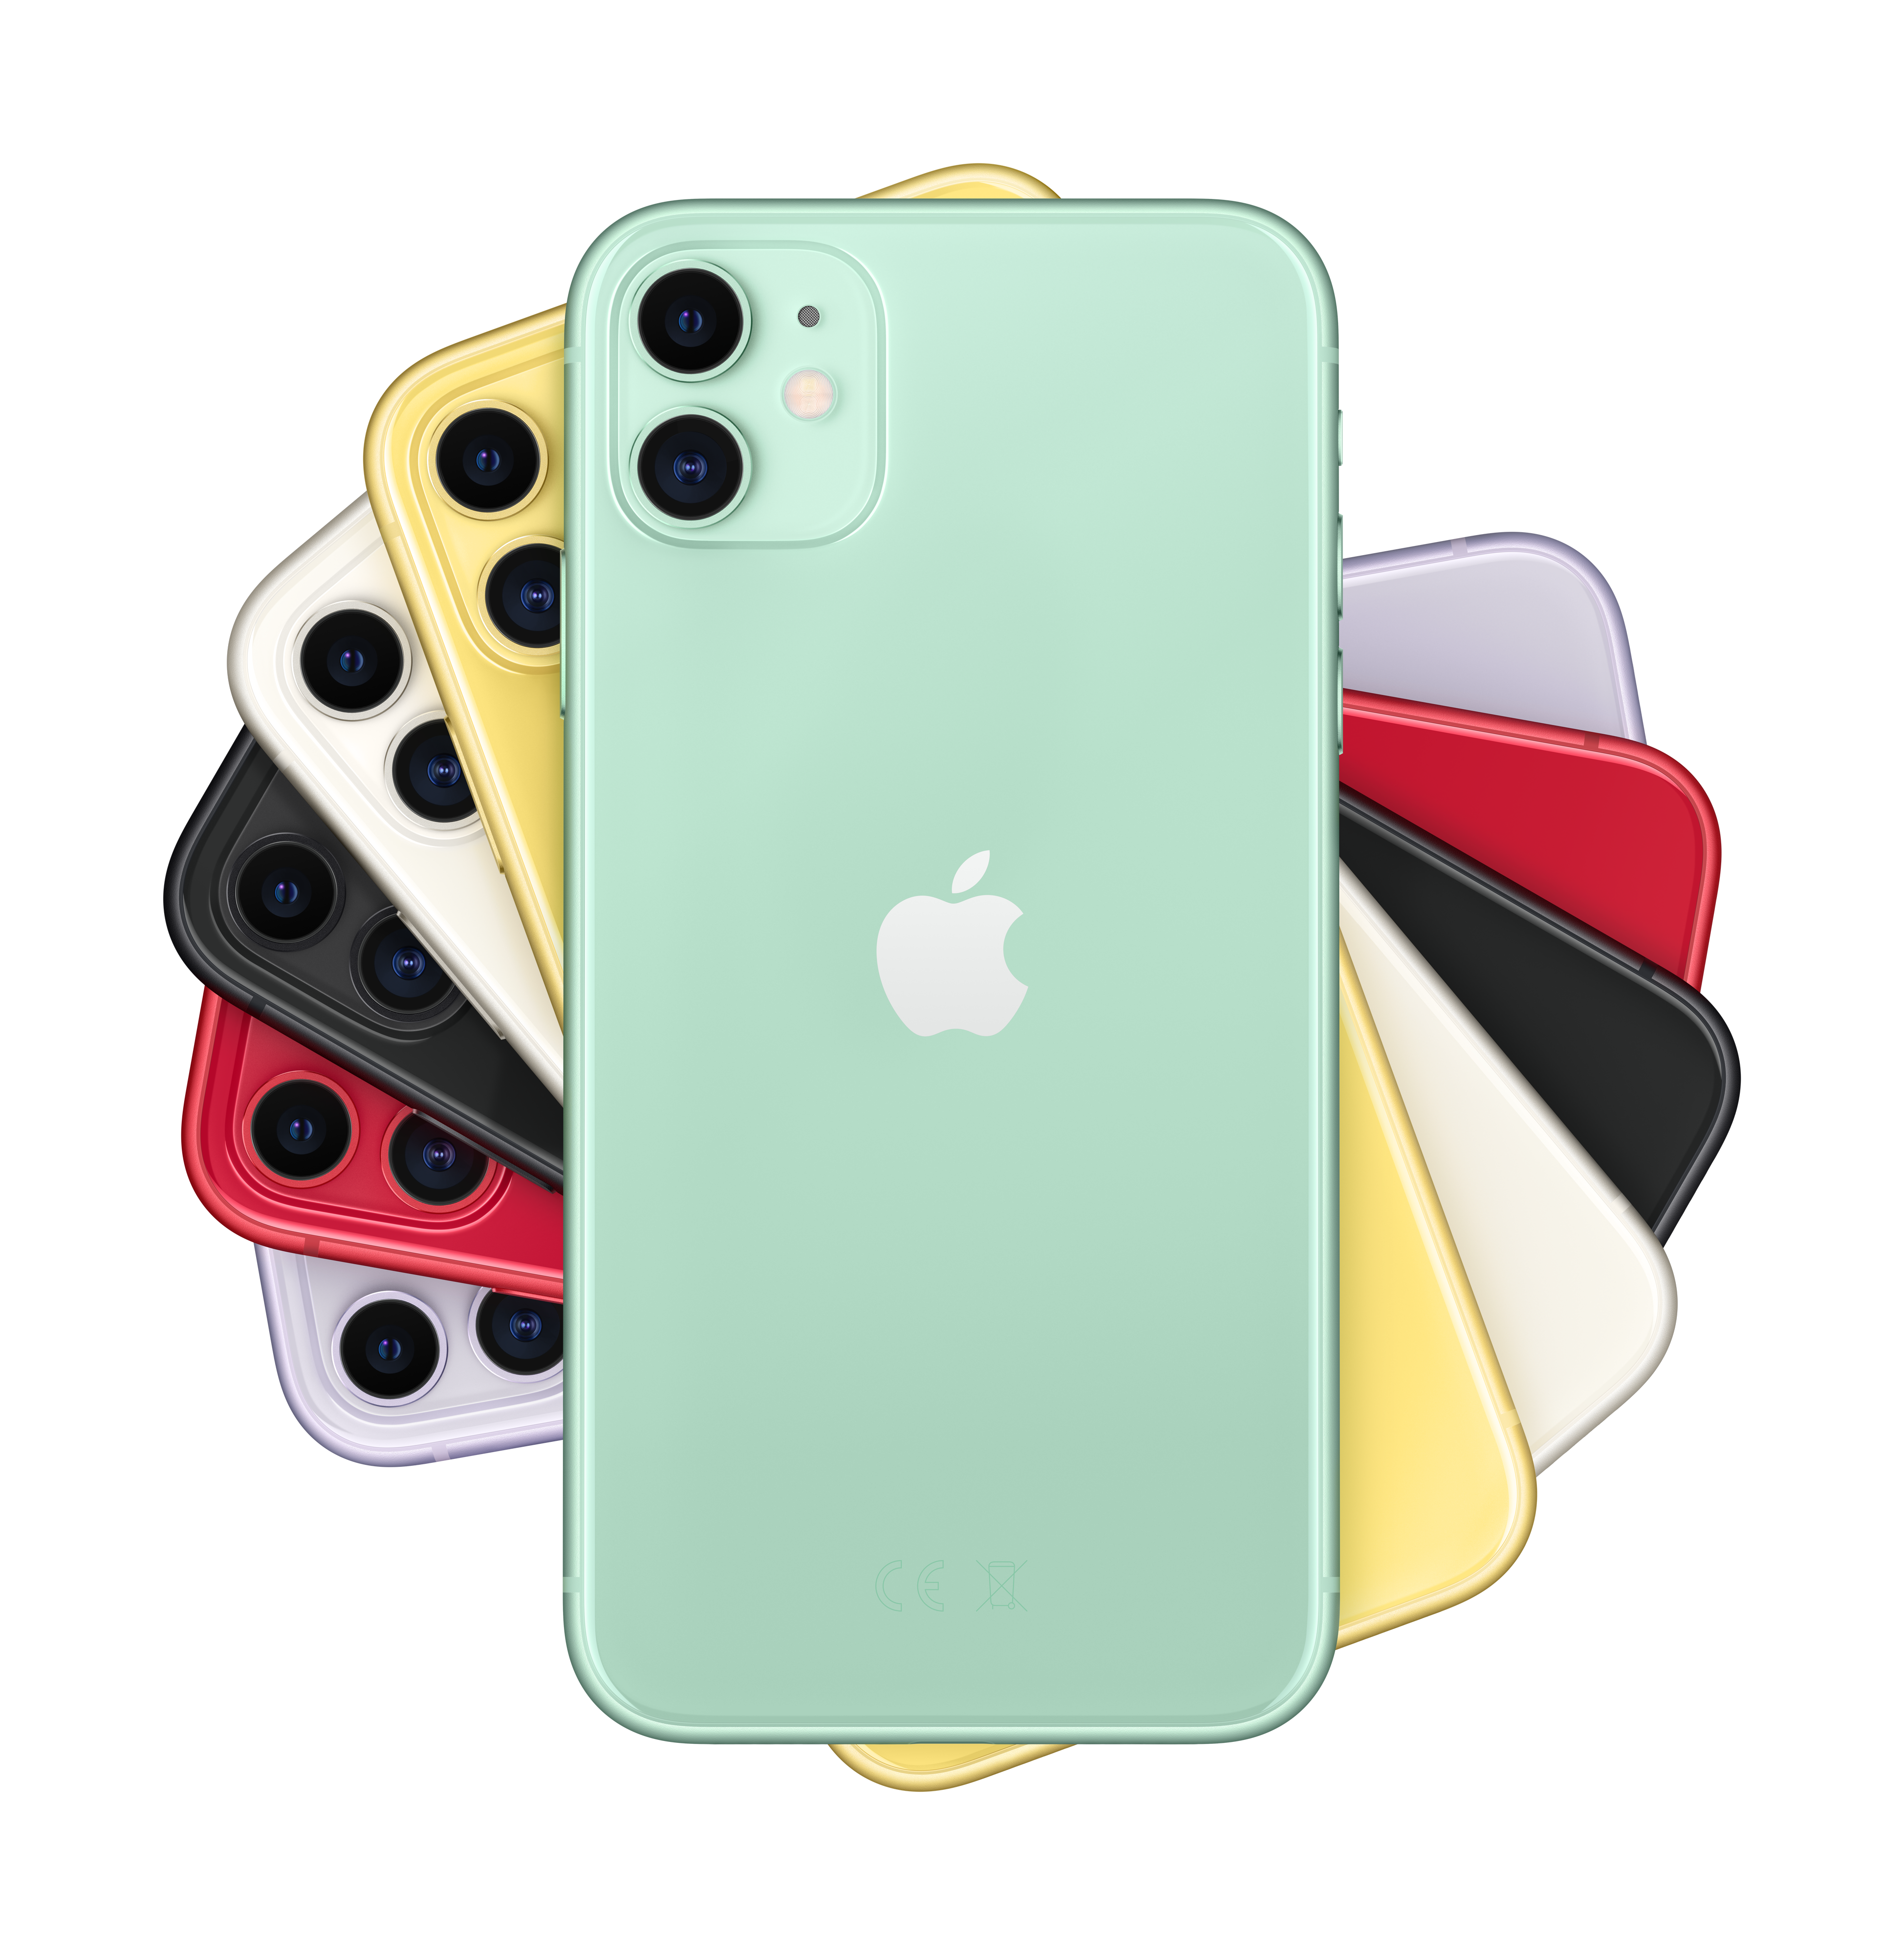 colores del iphone 11 y camara